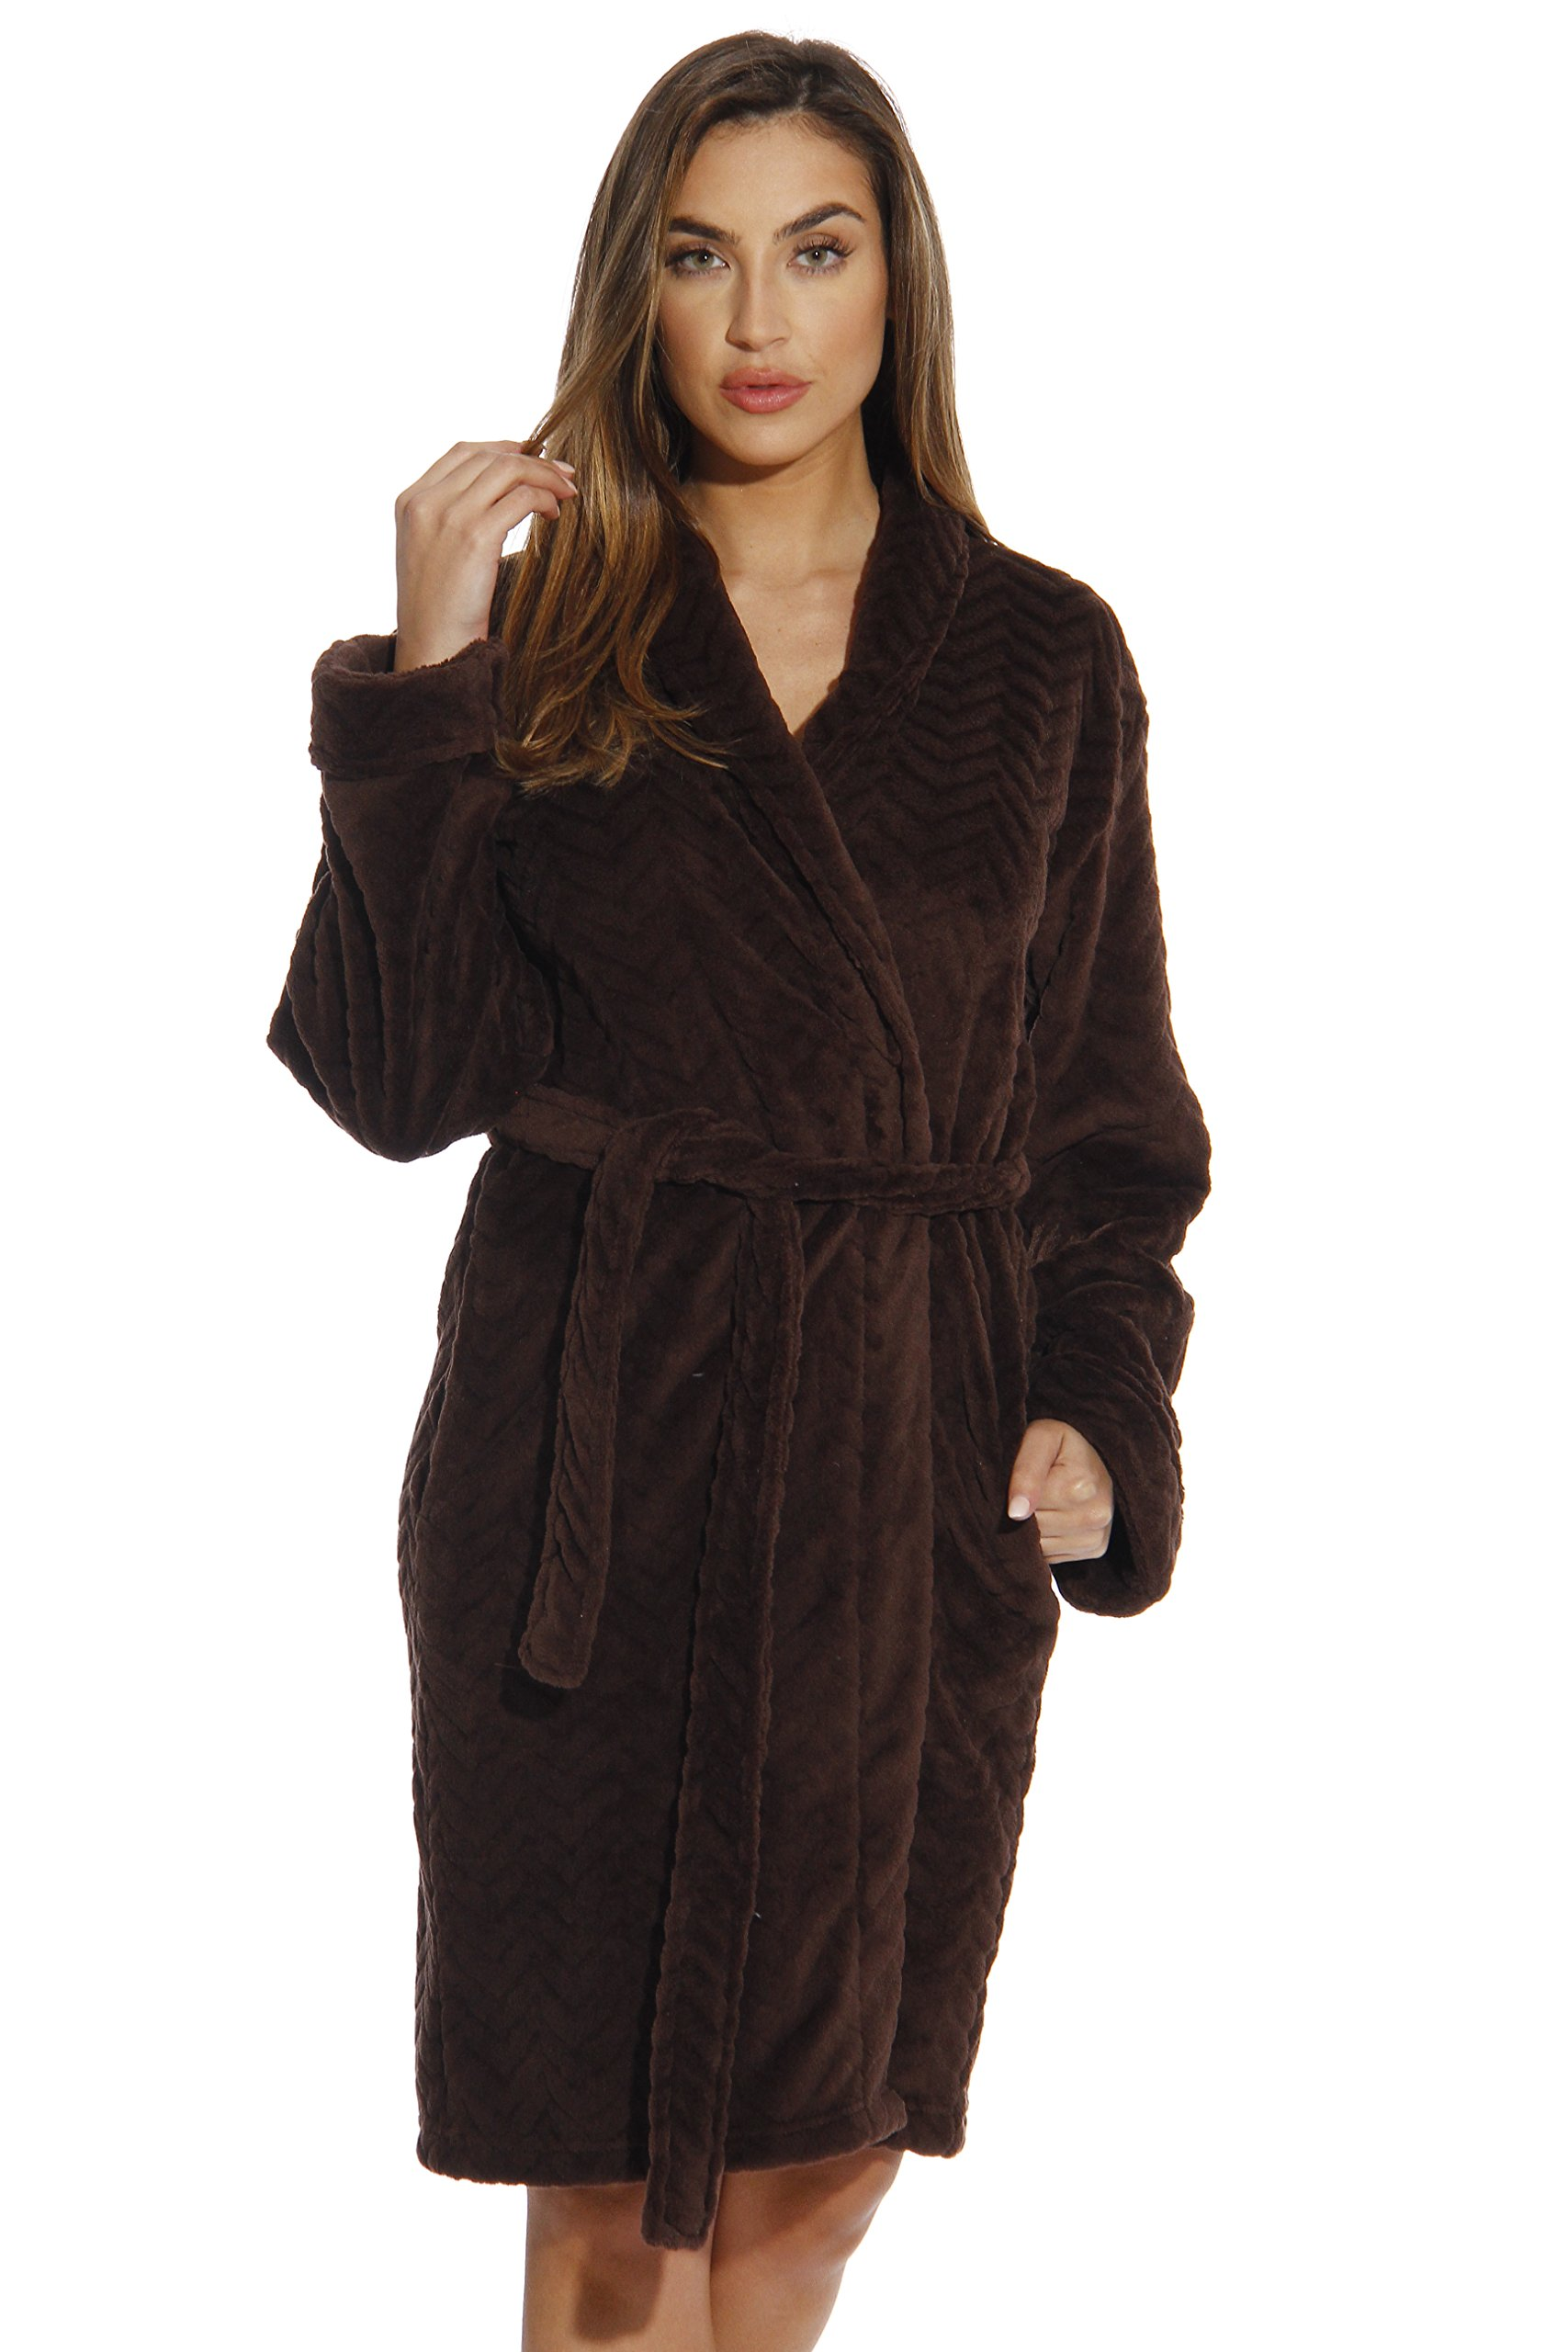 6312-Brown-L Just Love Kimono Robe / Bath Robes for Women